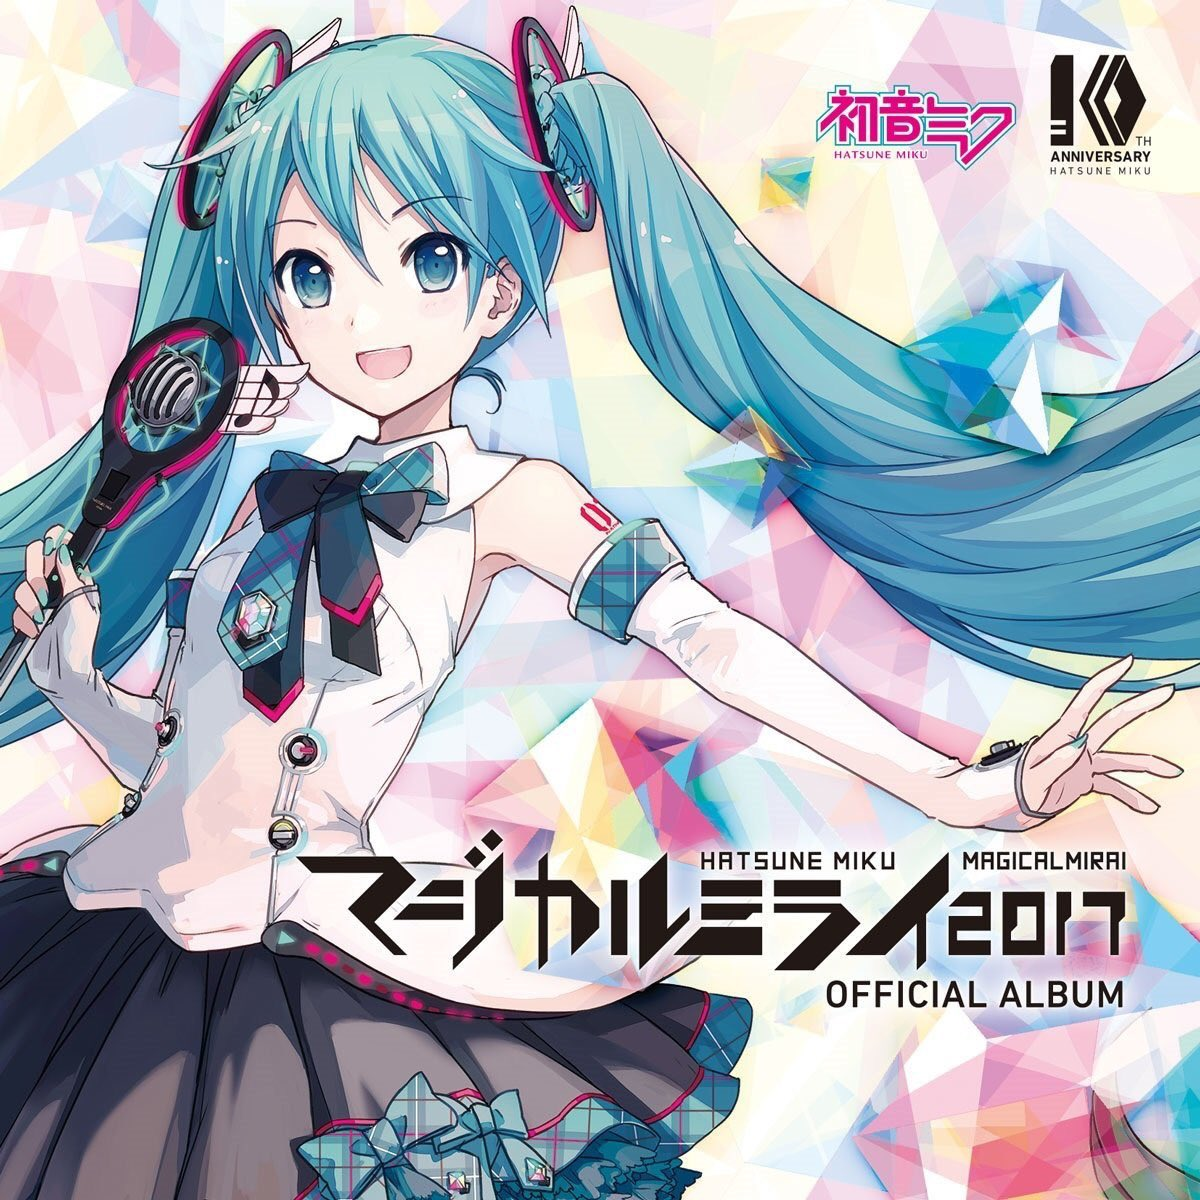 "初音ミク「マジカルミライ 2017」OFFICIAL ALBUM (Hatsune Miku ""Magical Mirai 2017"" OFFICIAL ALBUM) (album)"